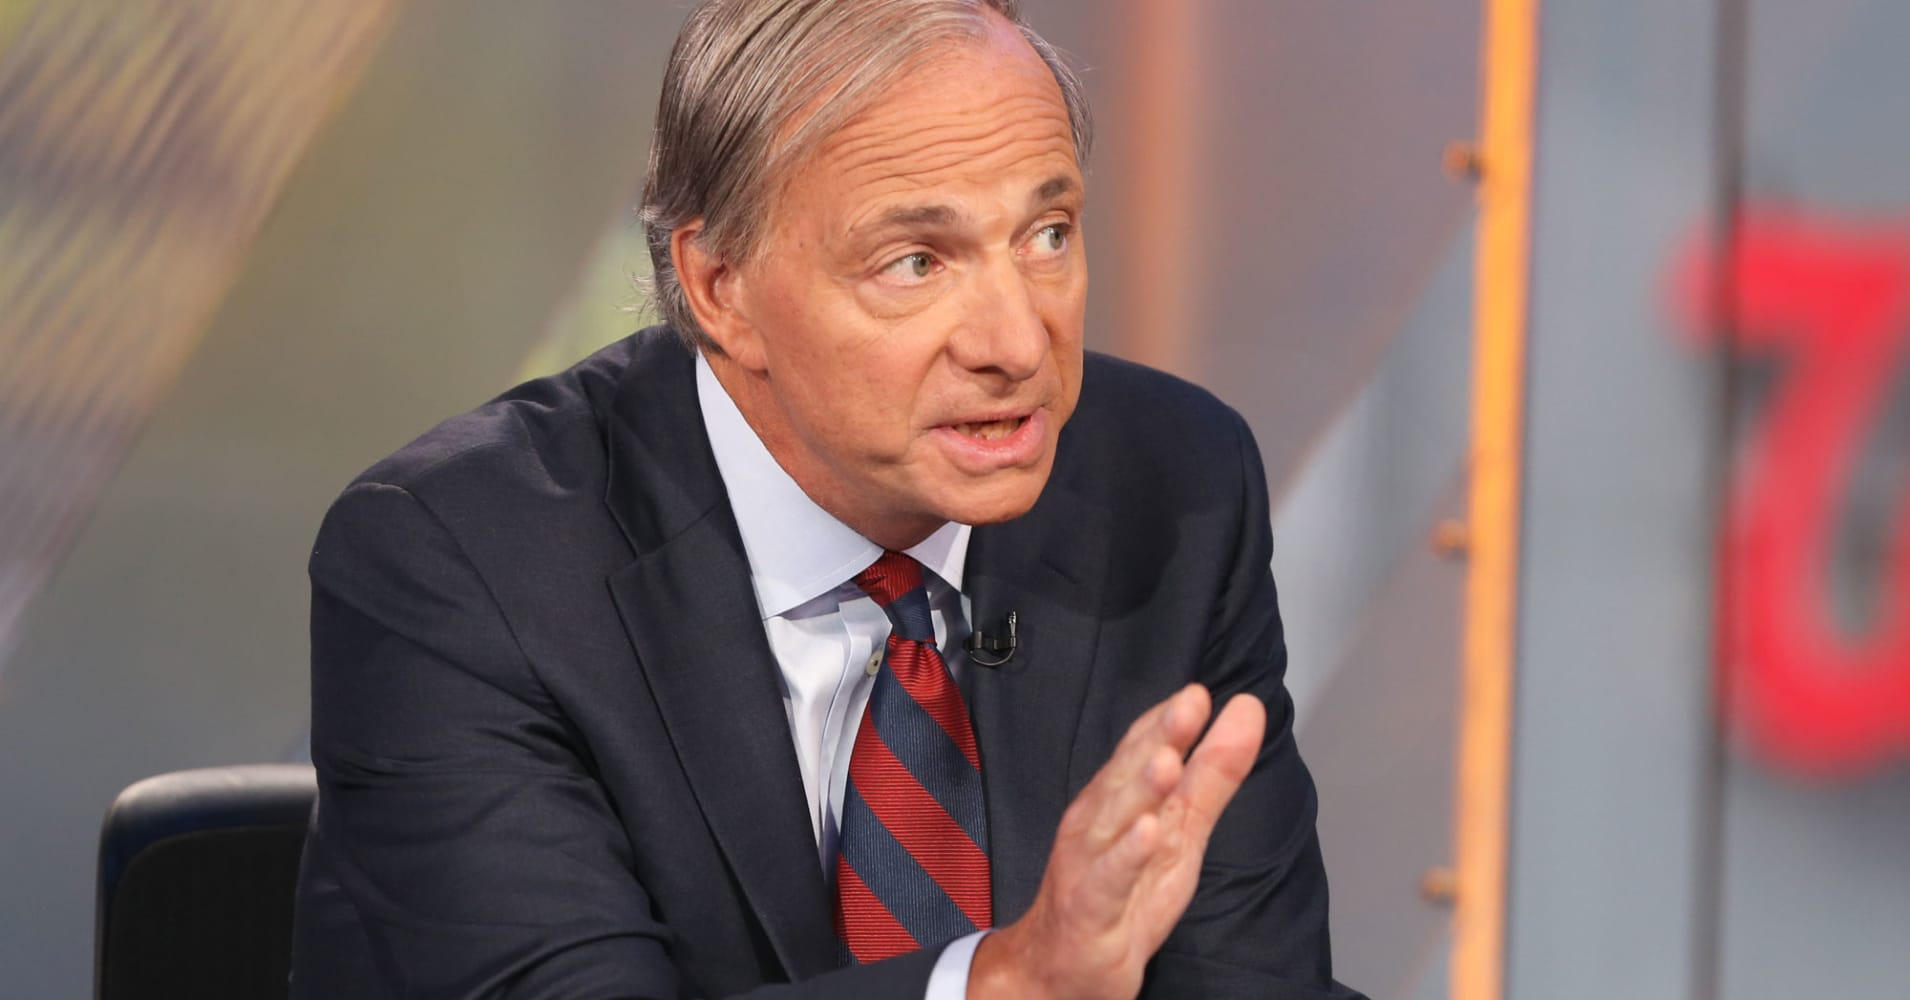 Billionaire Ray Dalio: Here are 'the most valuable 3 minutes of thoughts that I could possibly share'